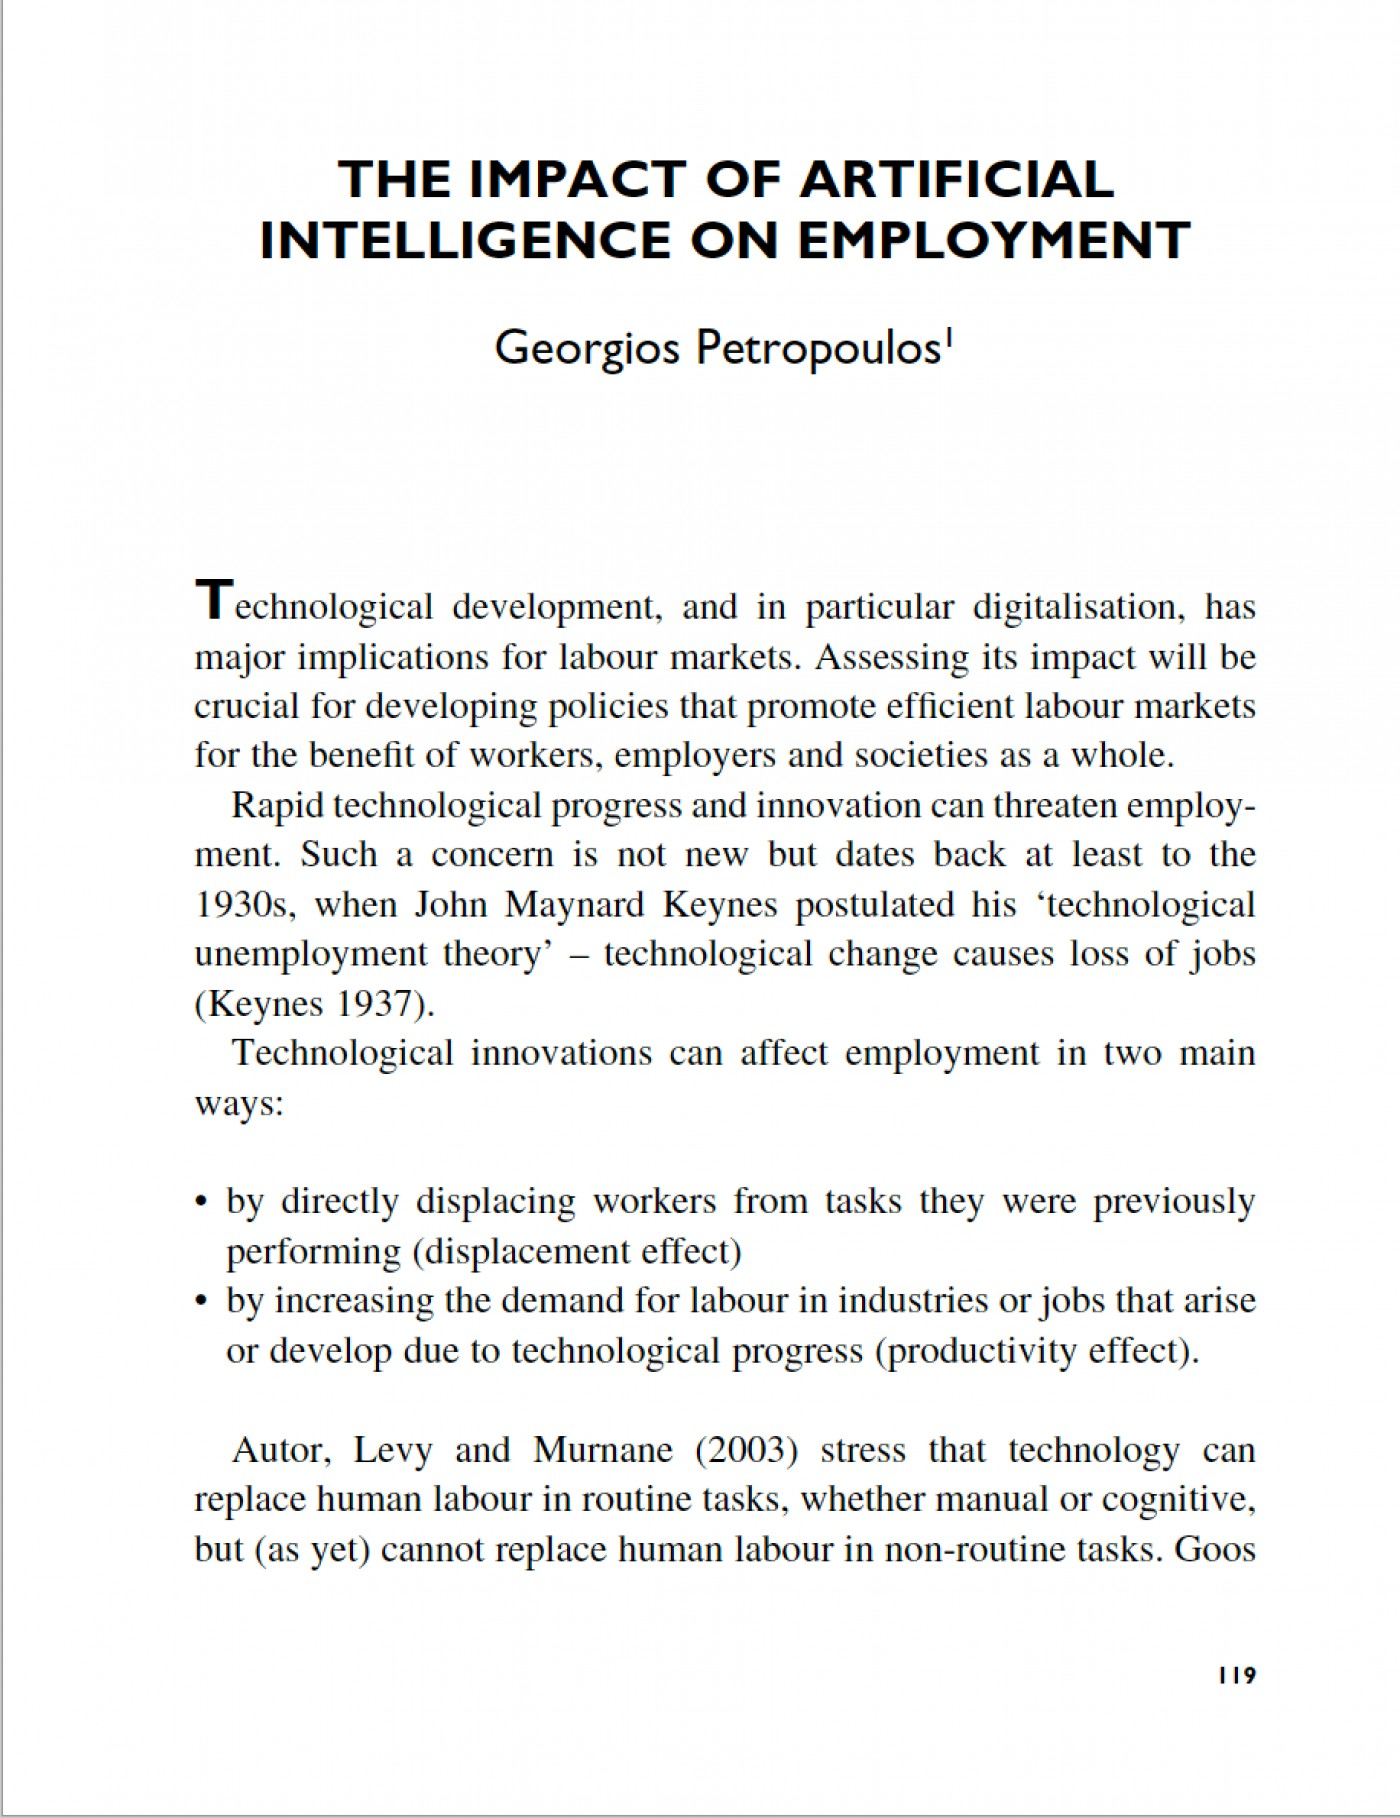 005 Screen Shot At Artificial Intelligence Research Sensational Paper 2018 Pdf Topics 1400